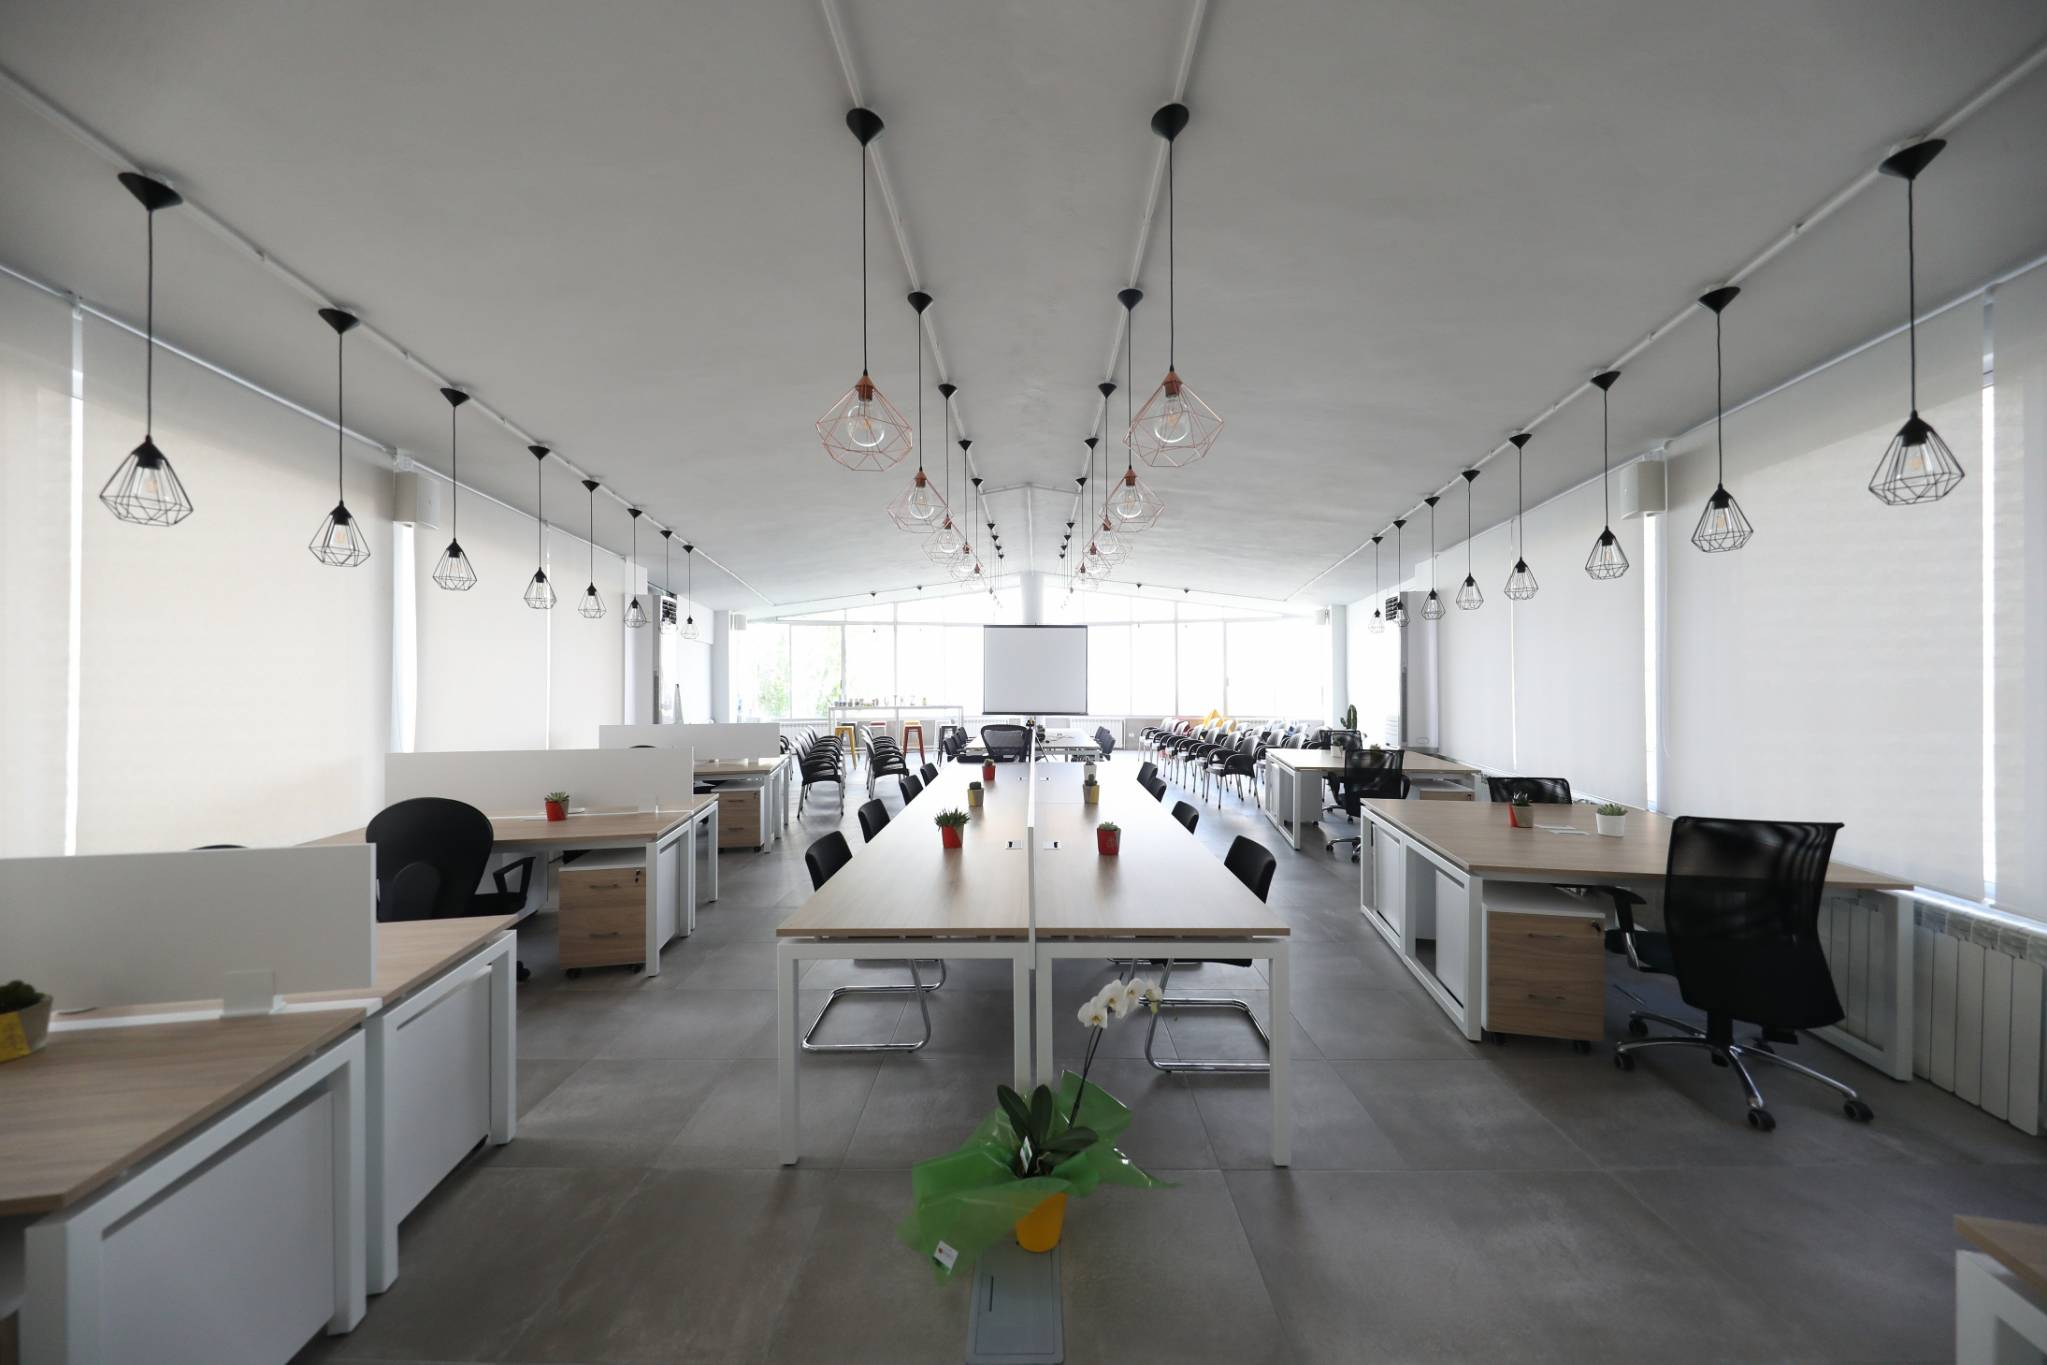 Le coworking explose à Beyrouth